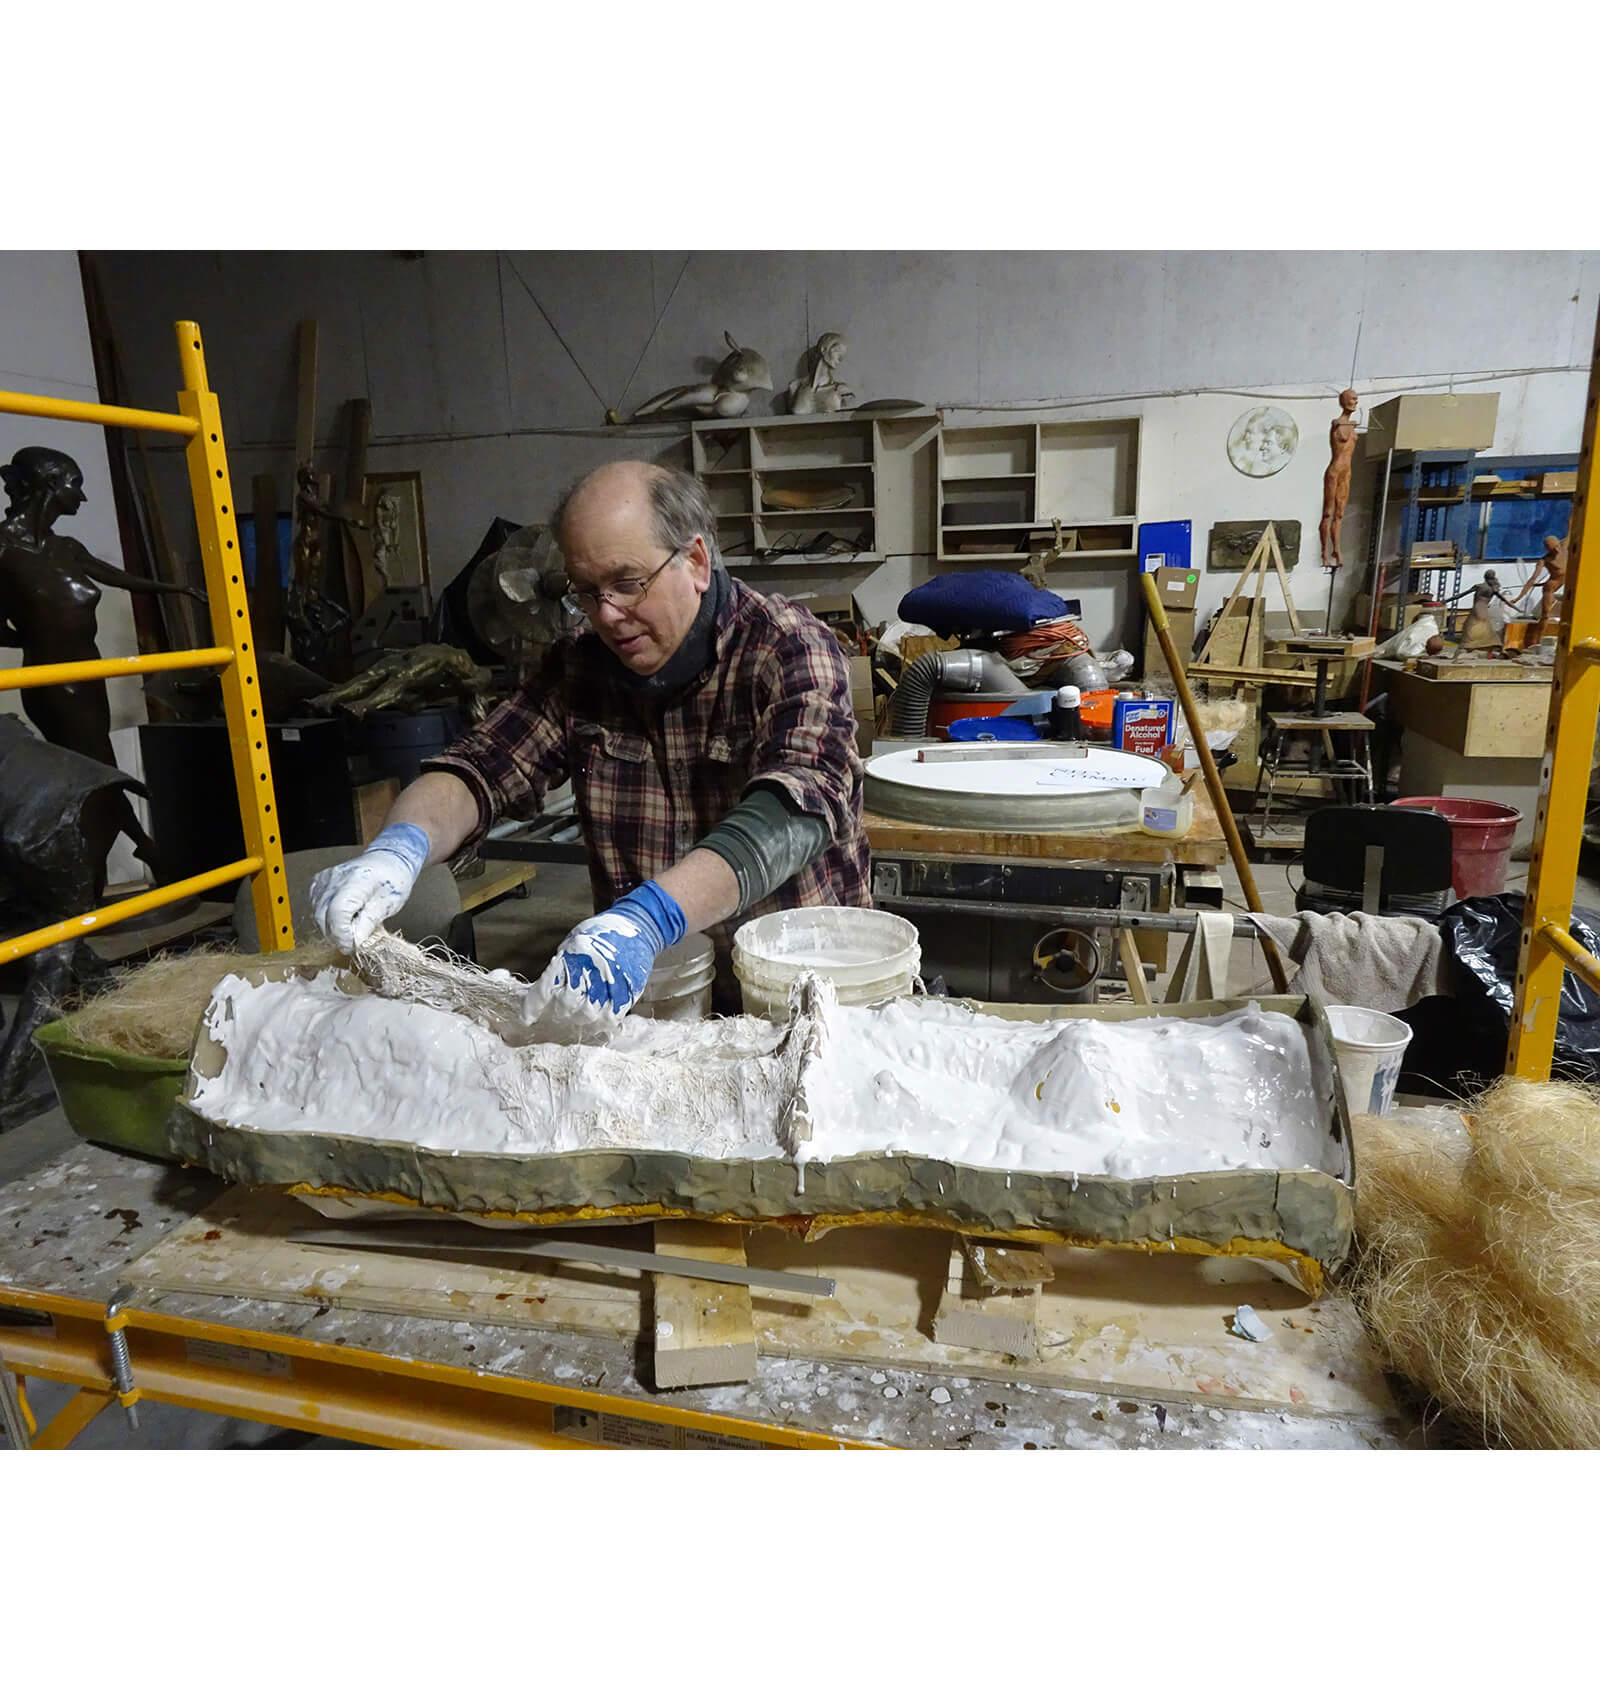 Sculptor andrew deVries applyin plaster back up mold over the rubber mold.